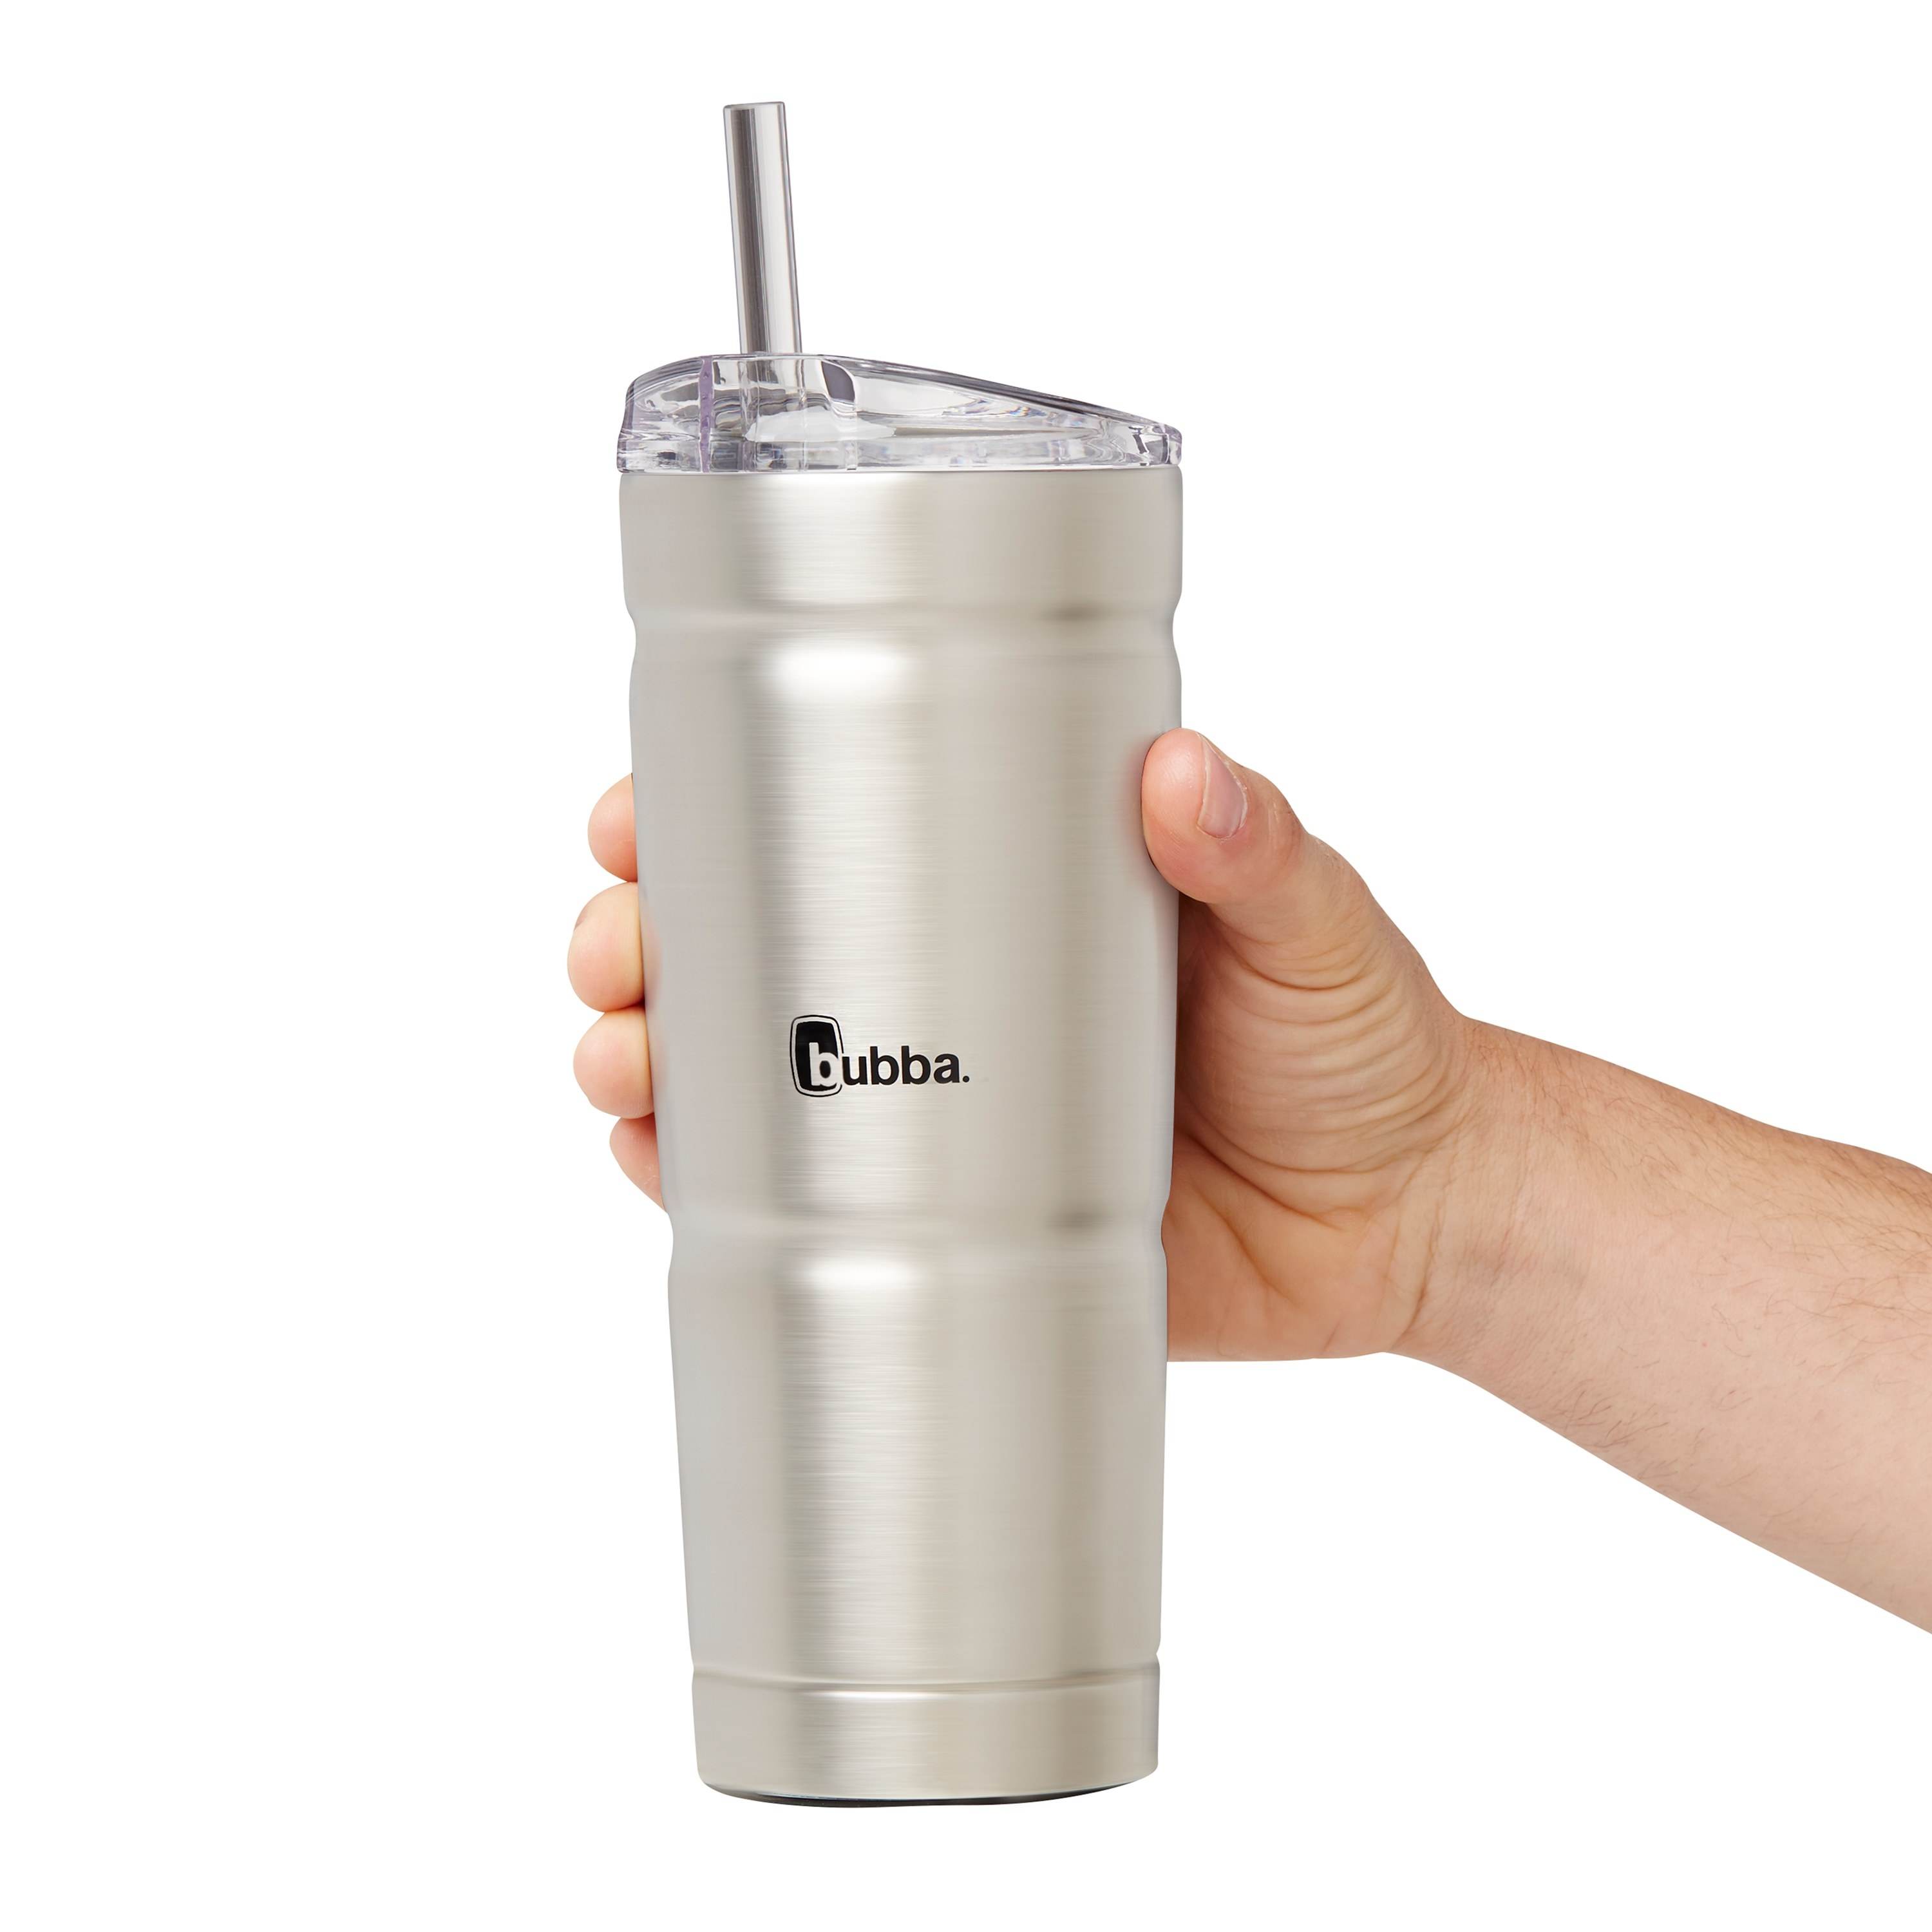 A model holding a silver tumbler with a built-in straw